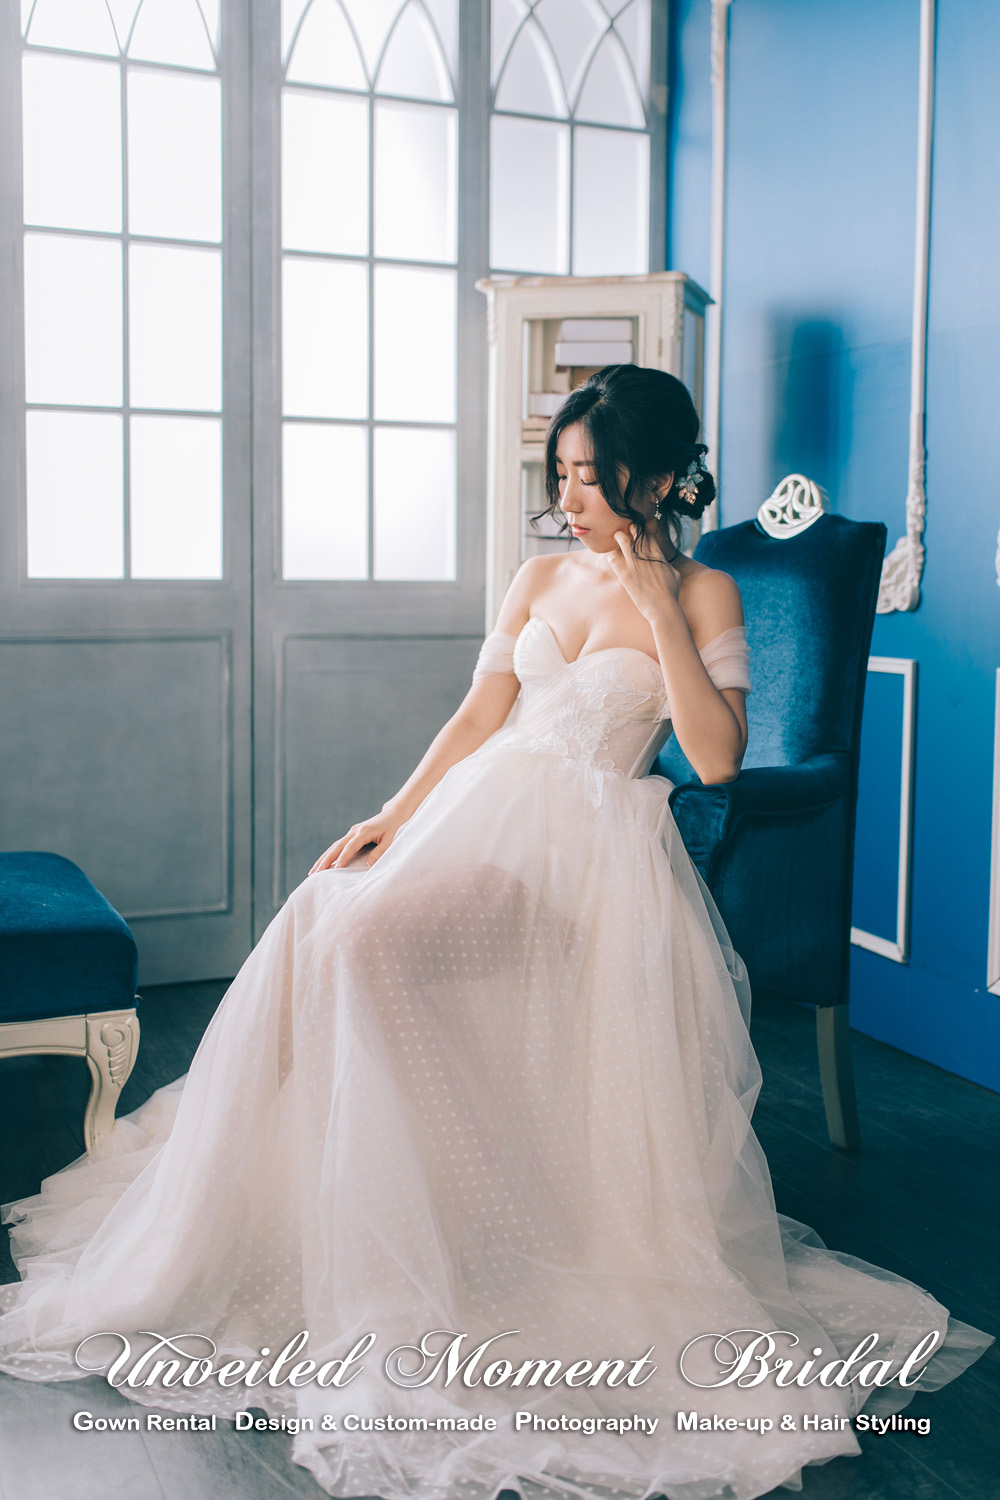 Off-the-shoulder, sweet-heart neckline, champagne carefree wedding dress with see-through skirt bottom. 一字肩, 心型胸, 透視薄紗, 短款香檳色輕婚紗